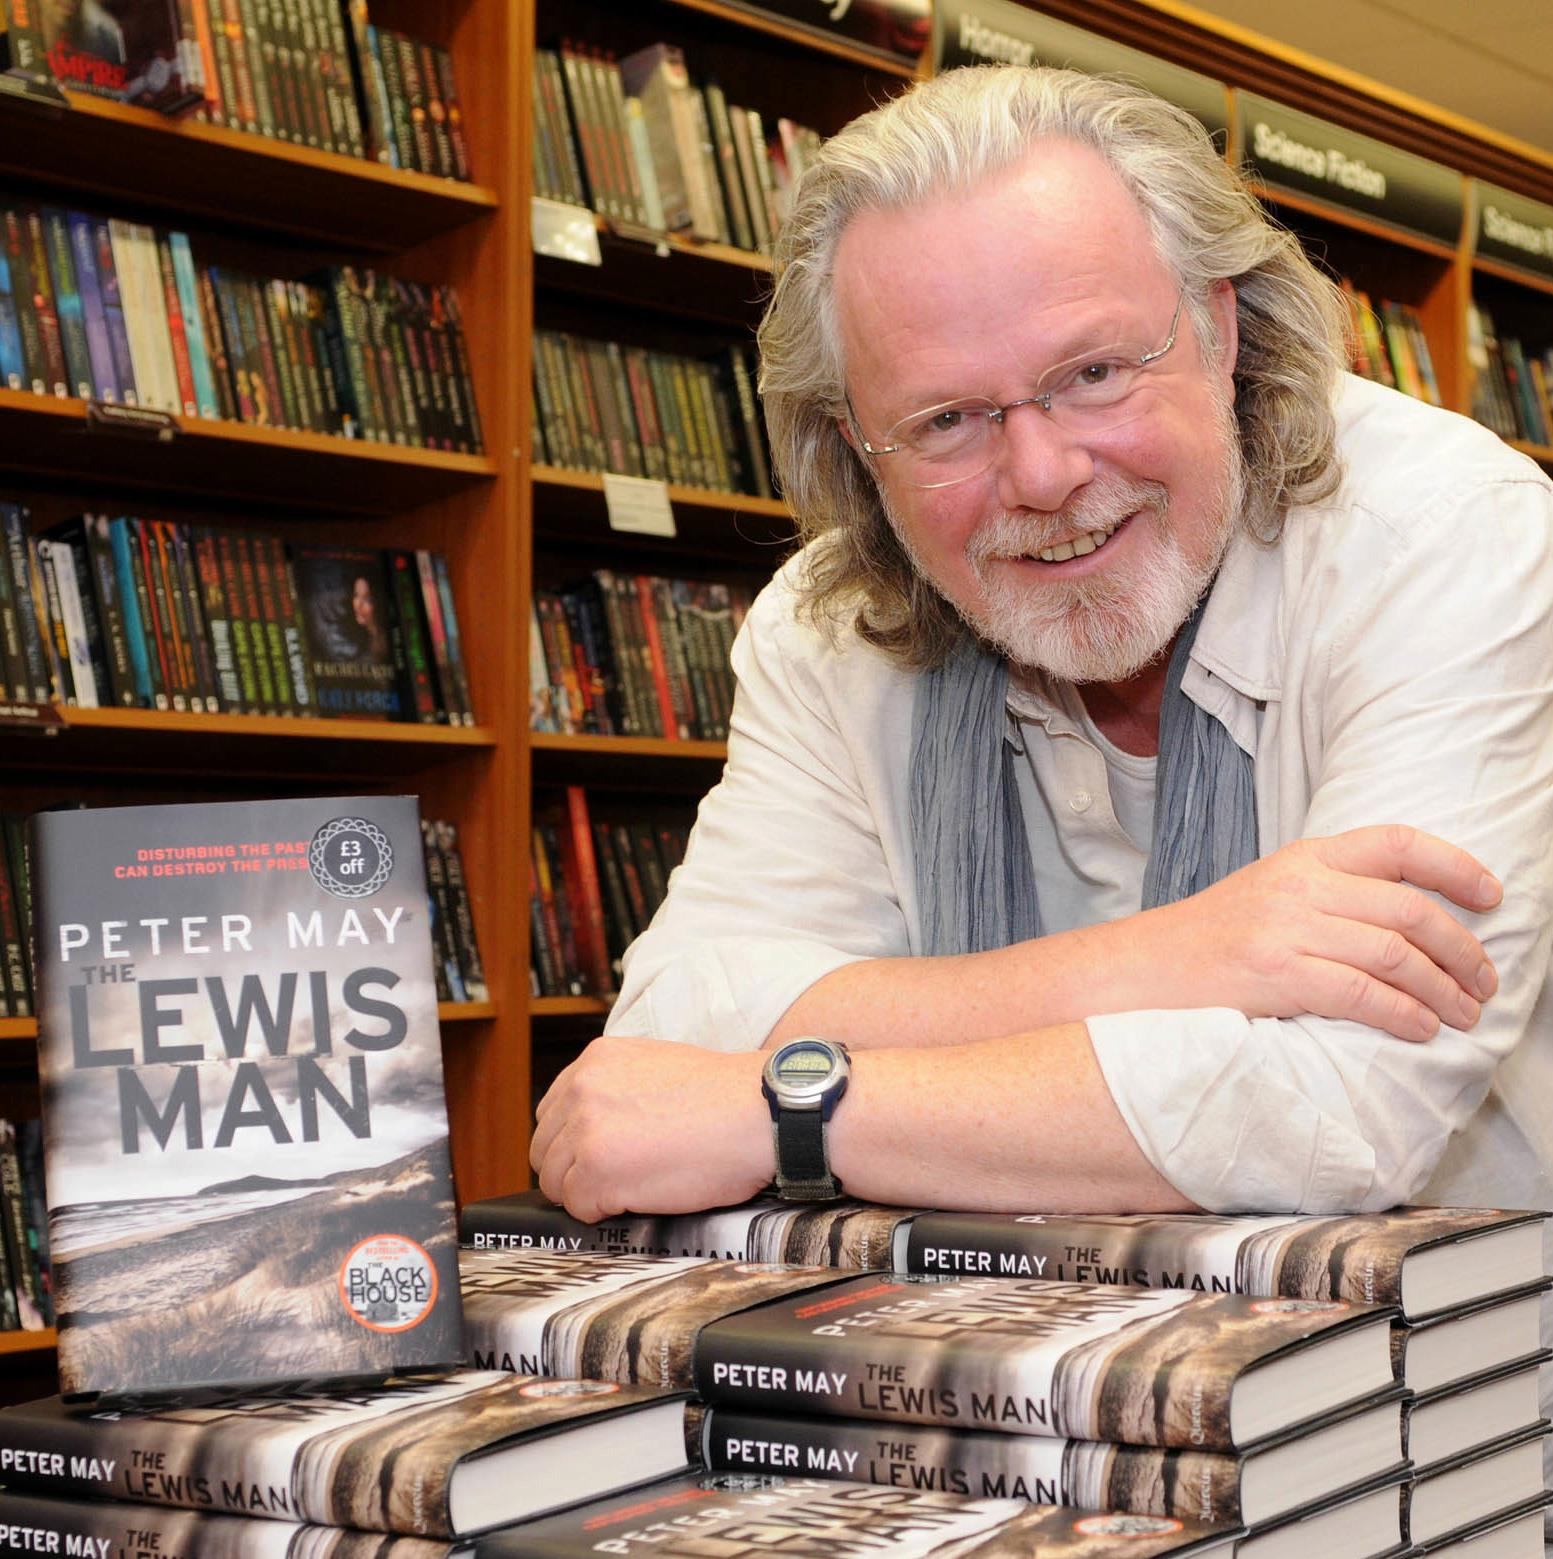 FORM SUCCESS Peter May Scottish Author Of The Lewis Trilogy